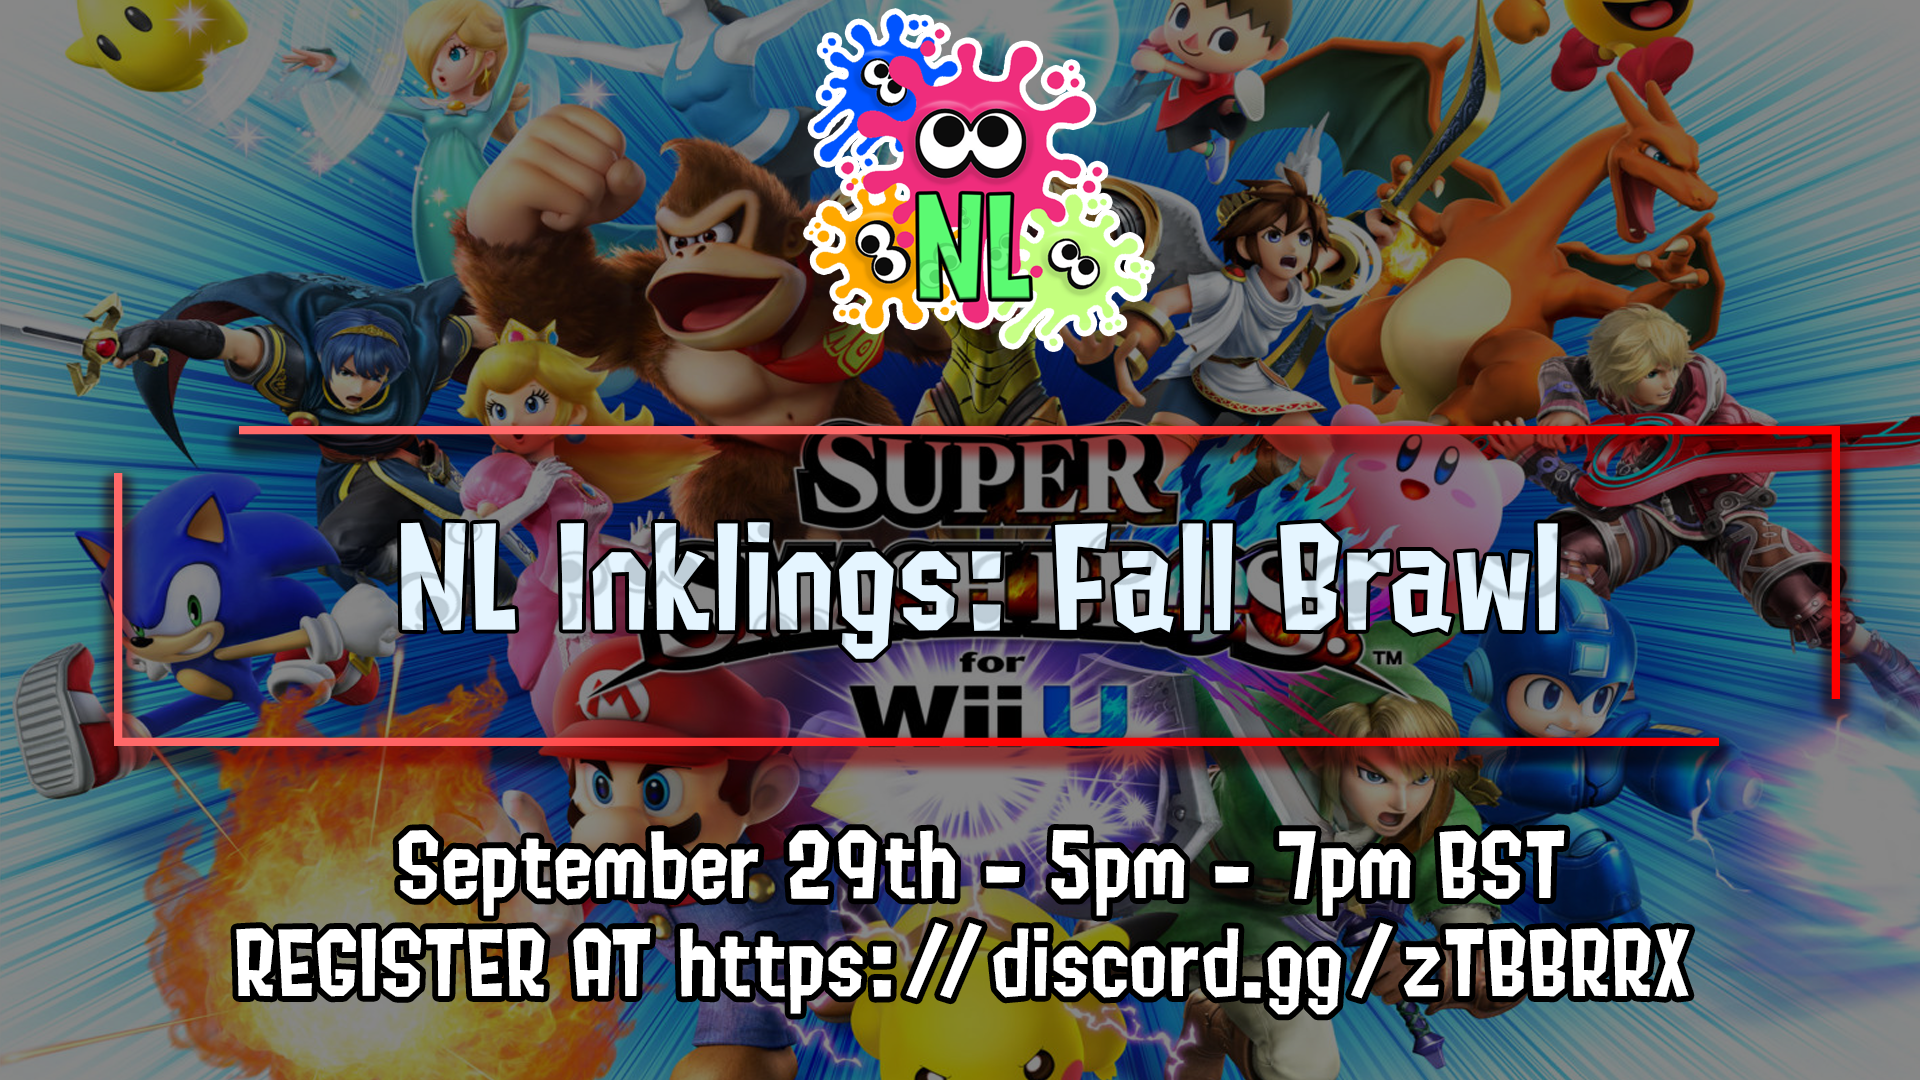 We will give Smash 4 a true send off!